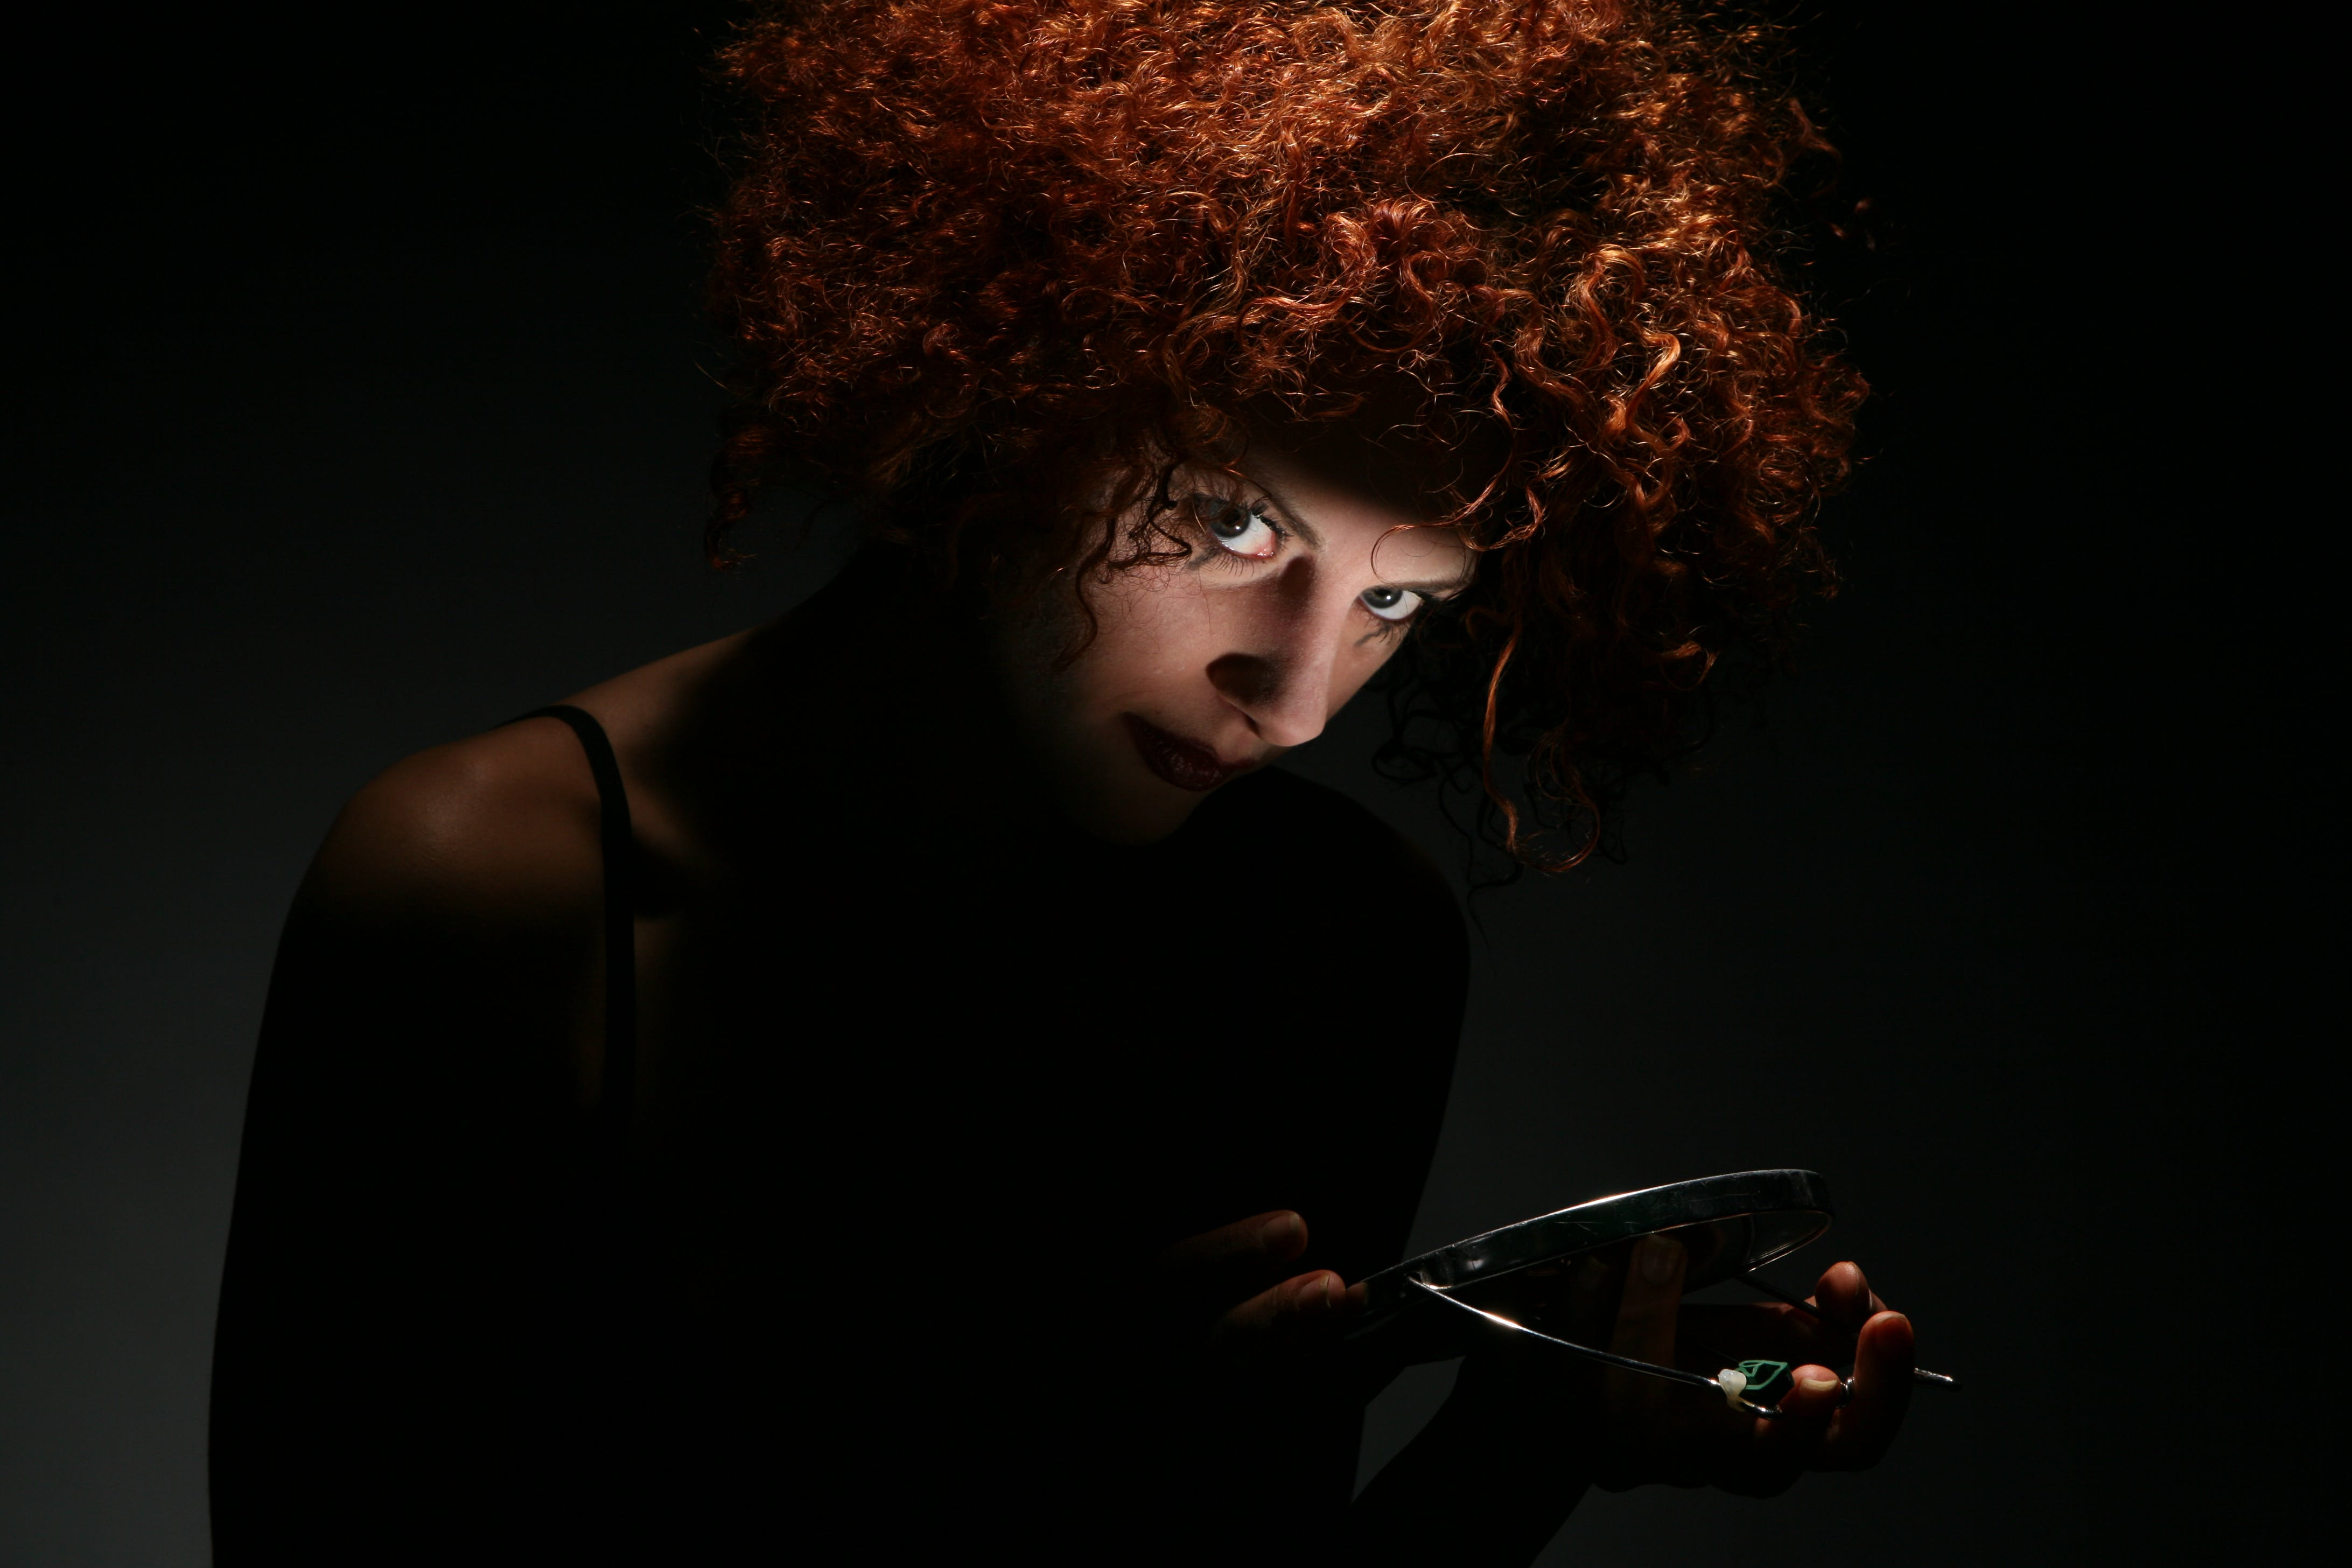 Free stock photo of woman, hair, crazy, psycho